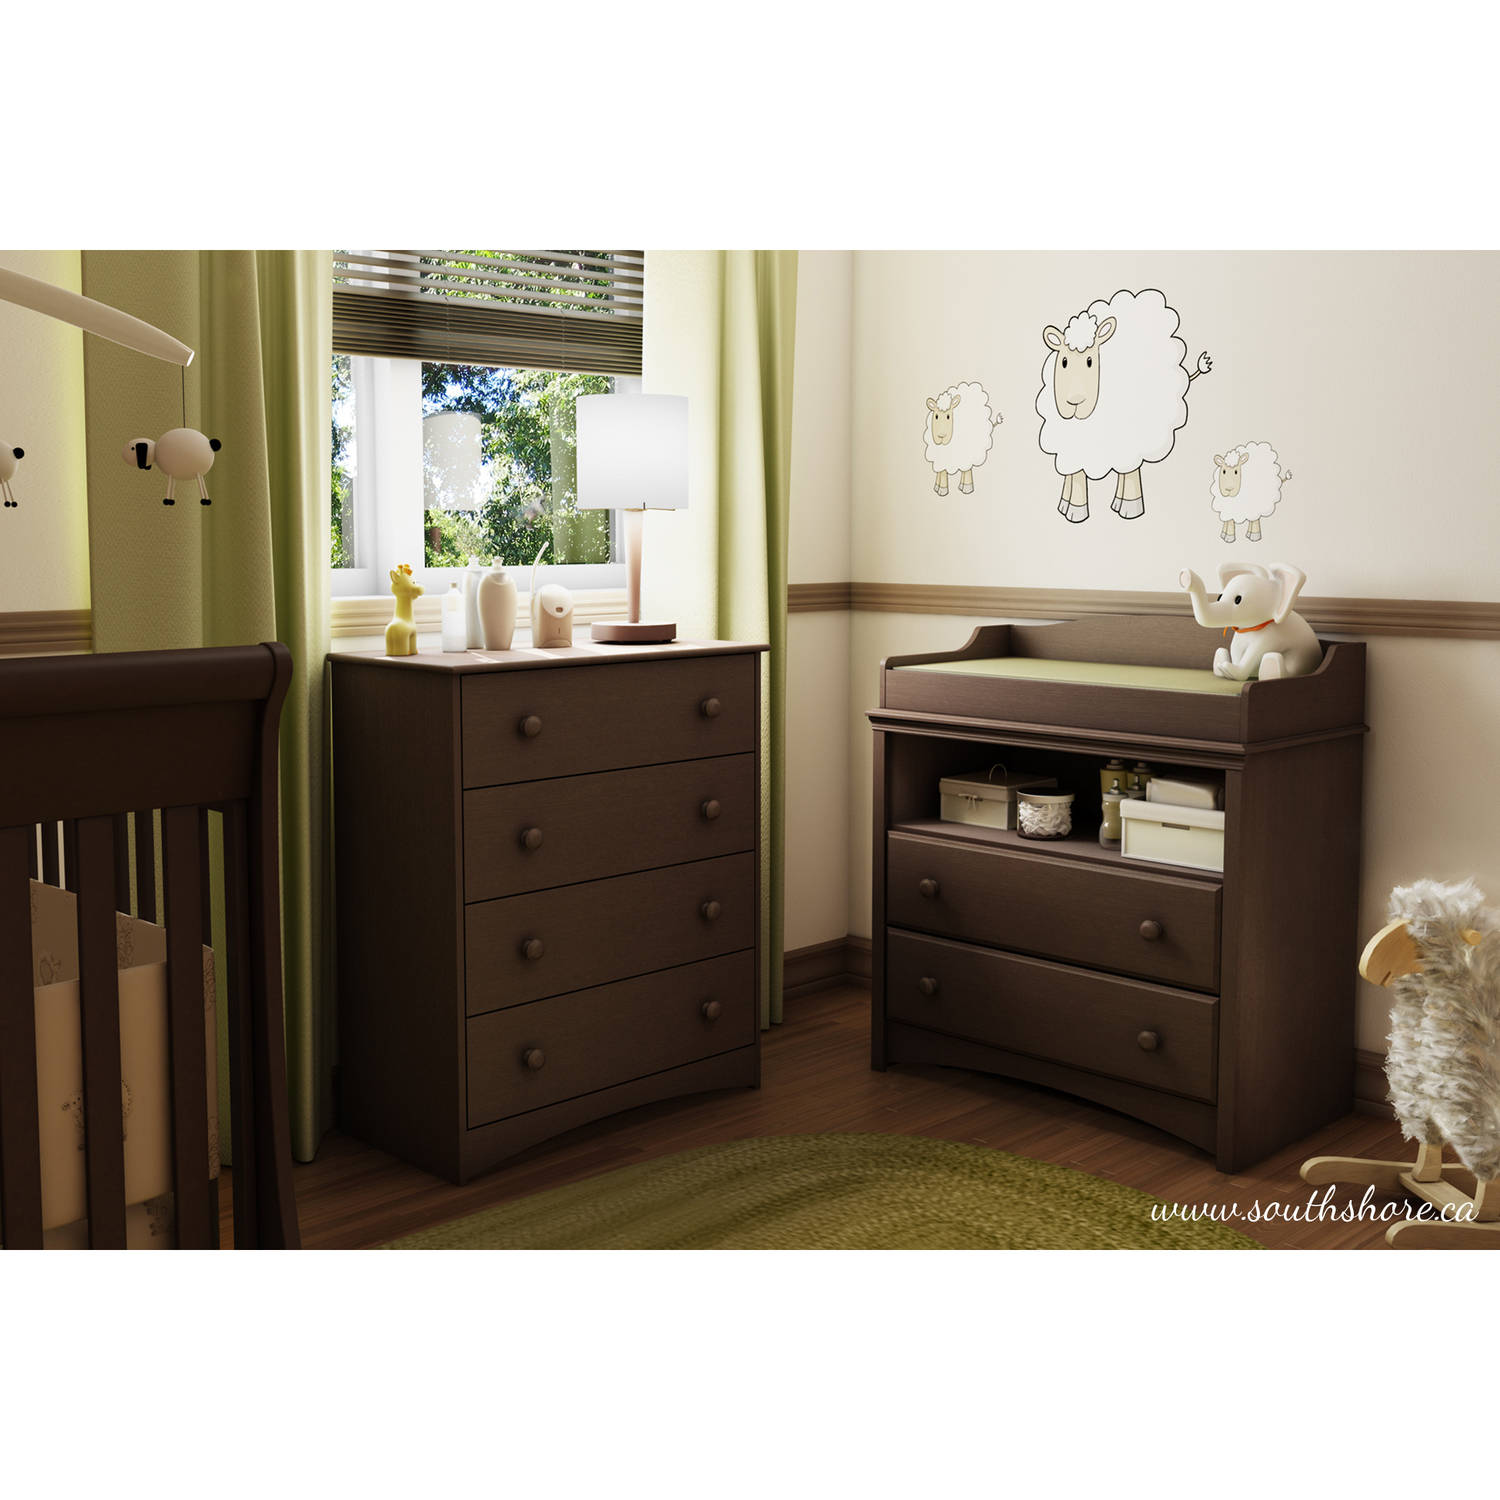 Attractive South Shore Angel Changing Table With Drawers, Multiple Finishes    Walmart.com